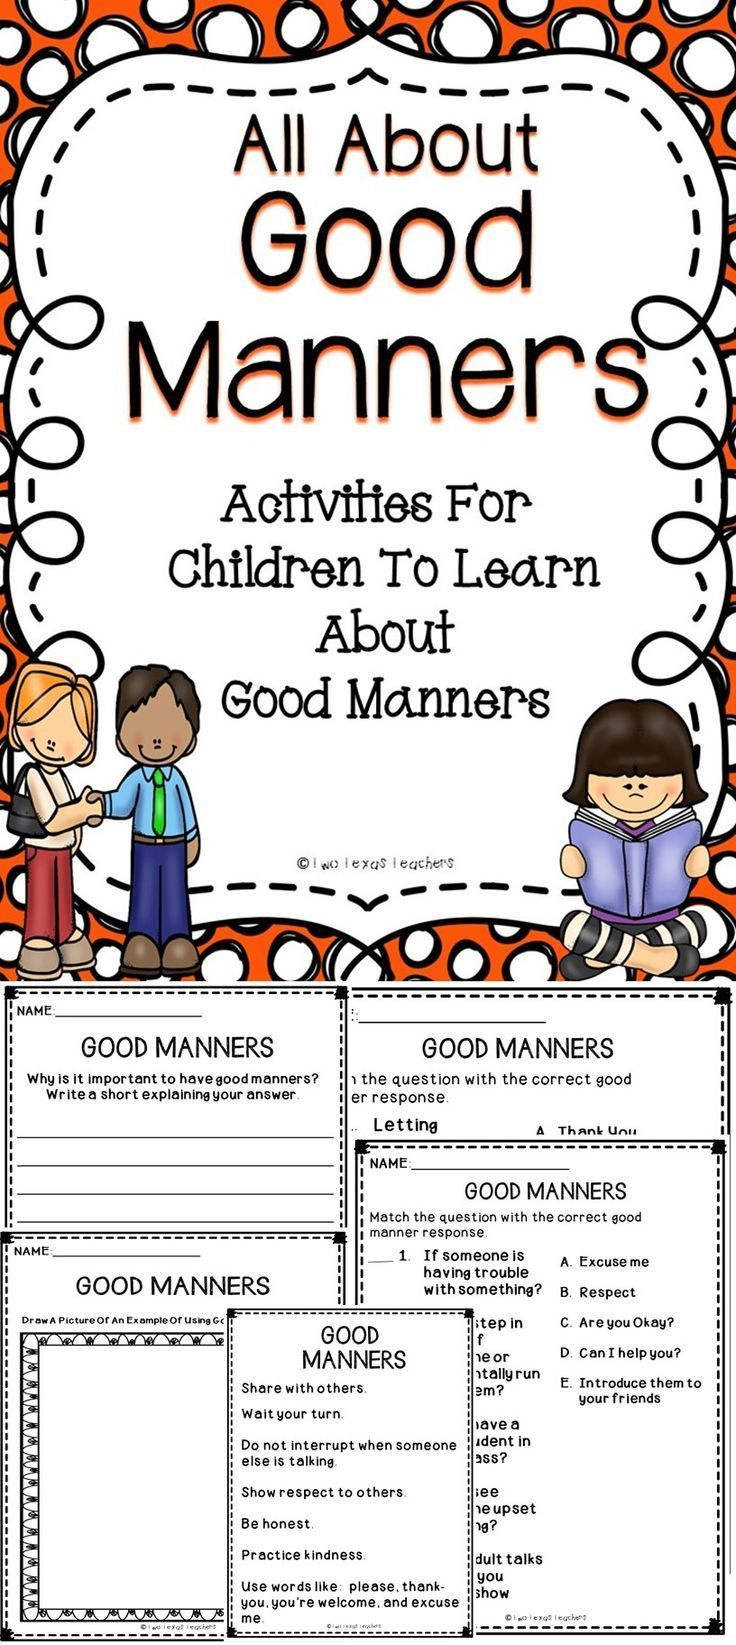 best good manners ideas manners for kids child  good manners